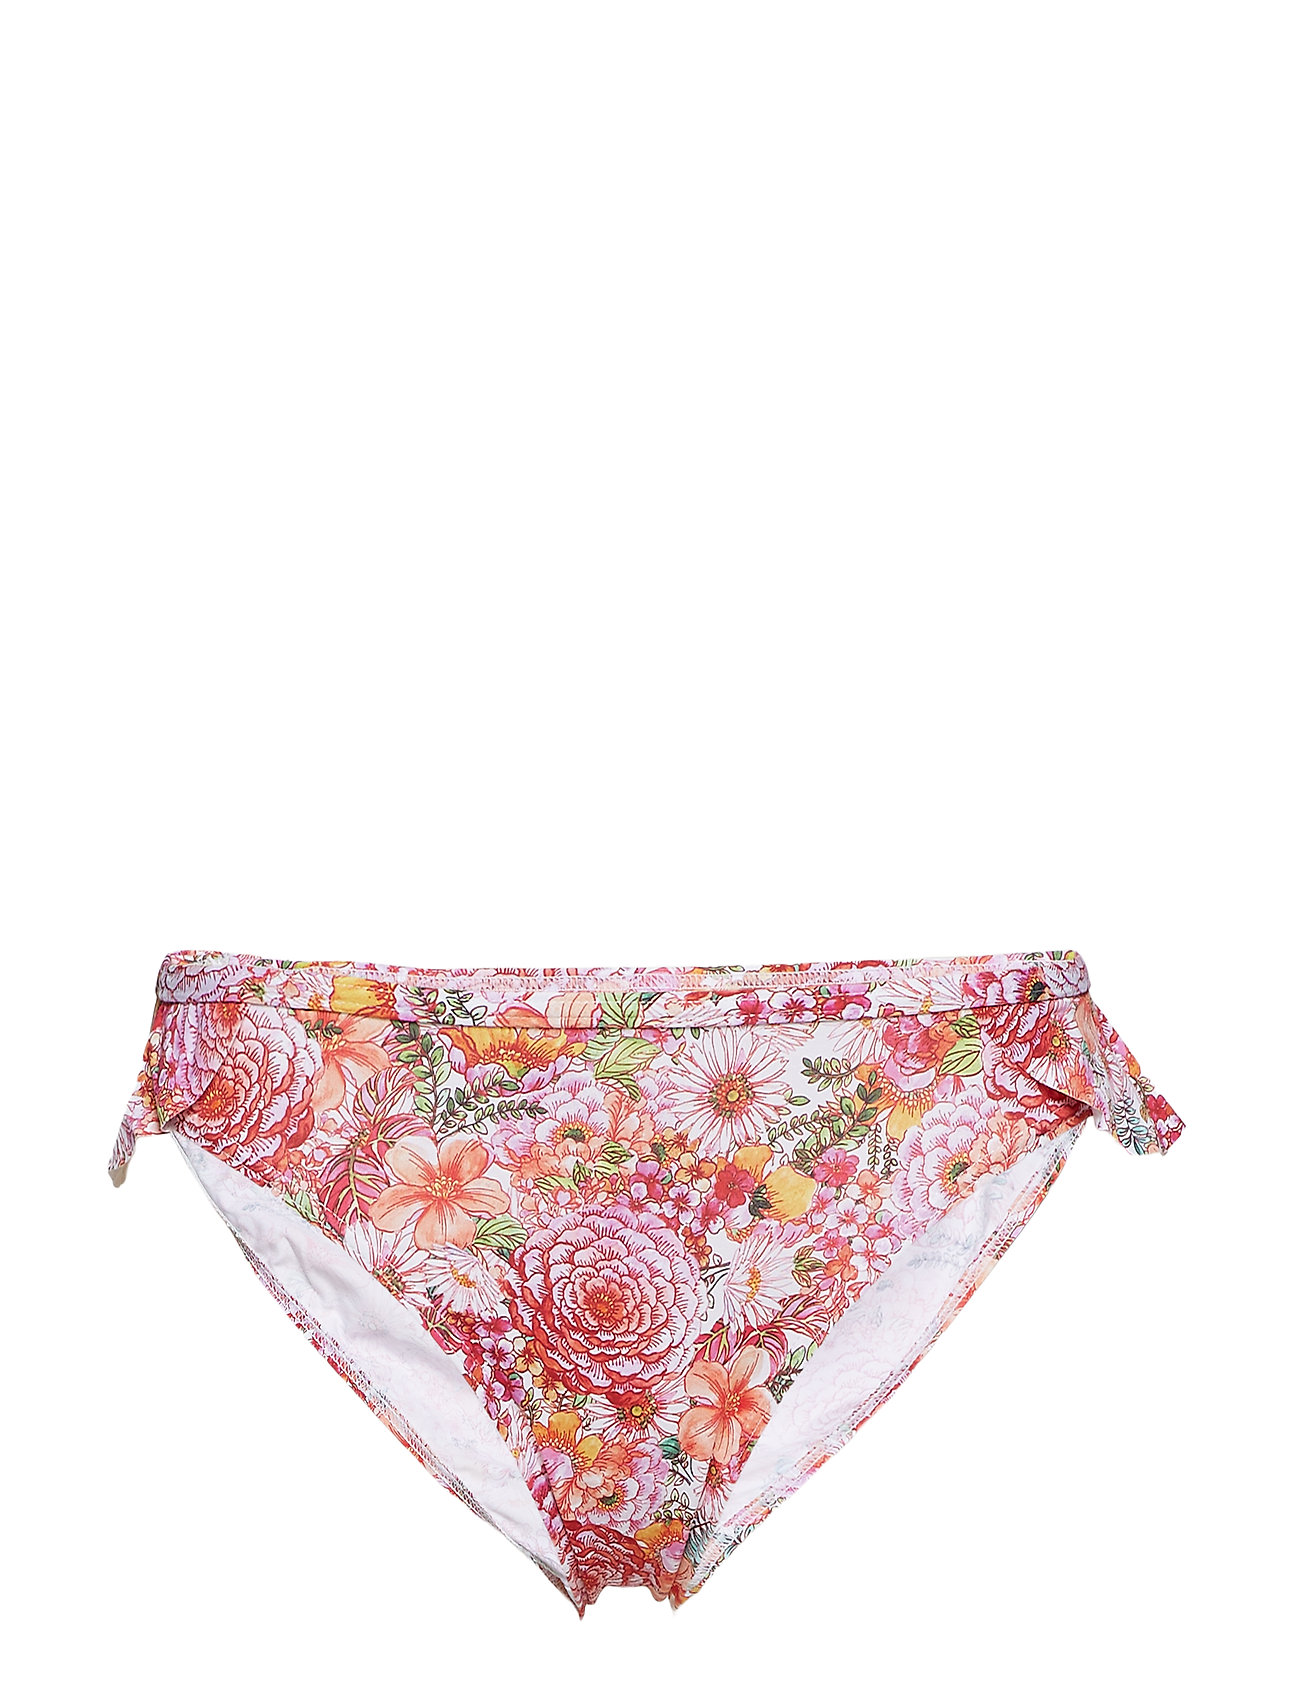 Esprit Bodywear Women Beach Bottoms - PINK FUCHSIA